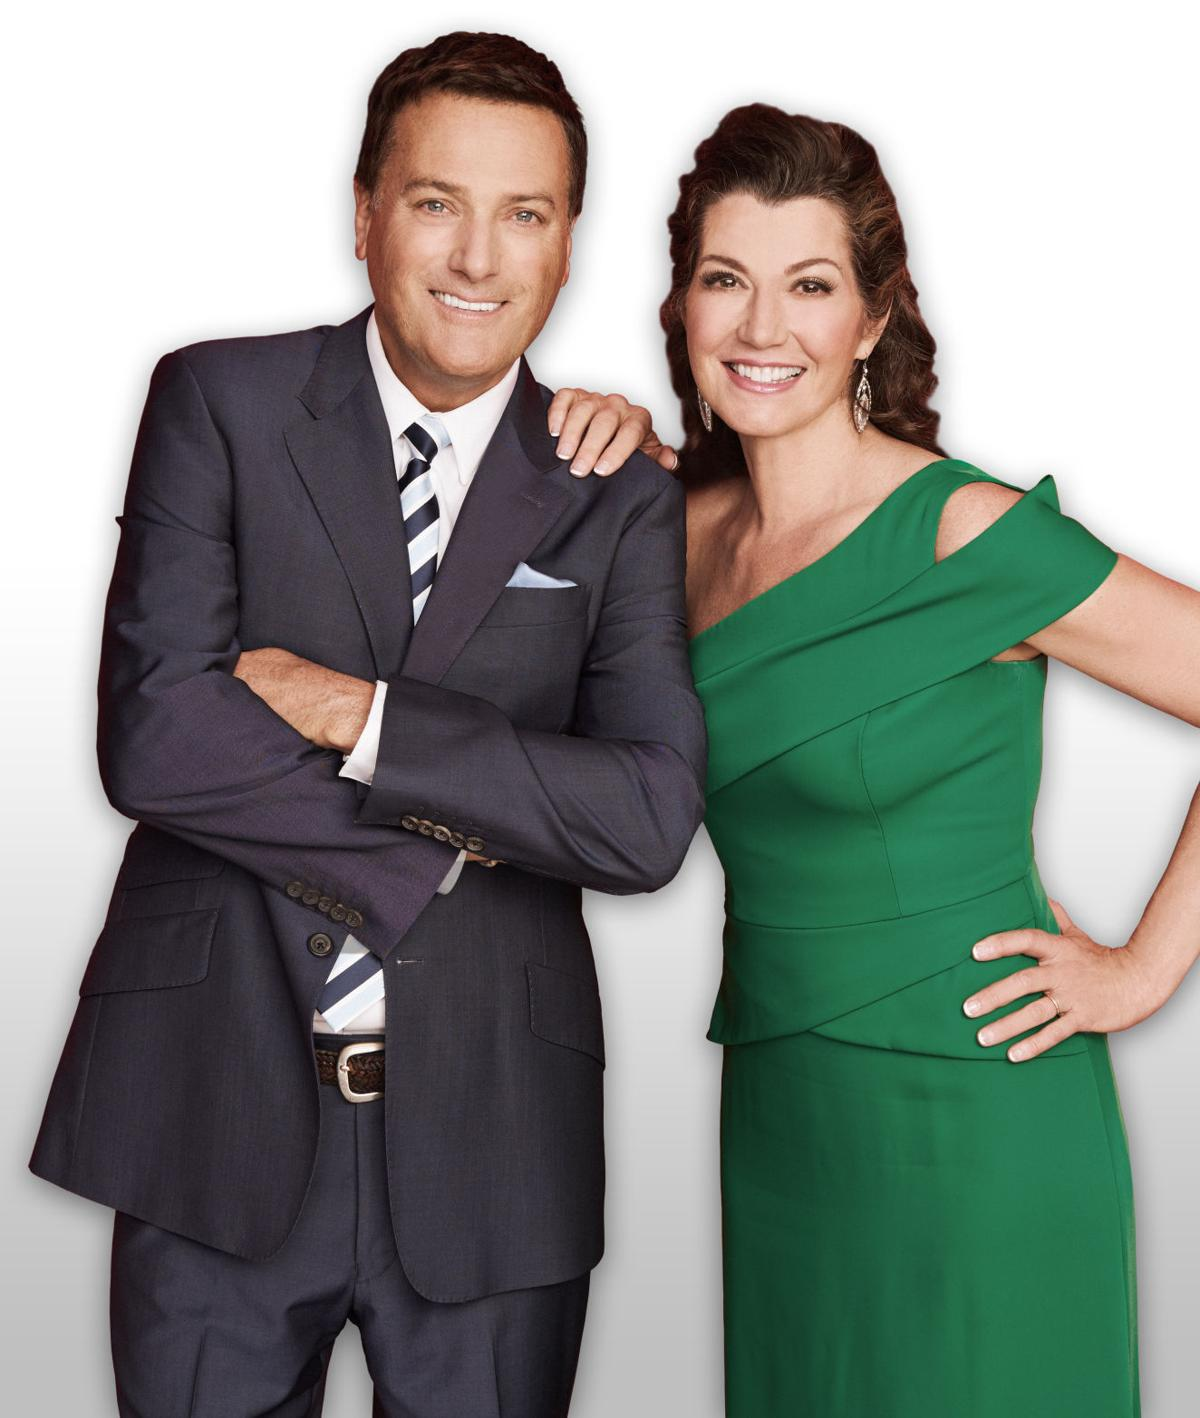 Amy Grant reflects on Christmas traditions and keeping family close ...